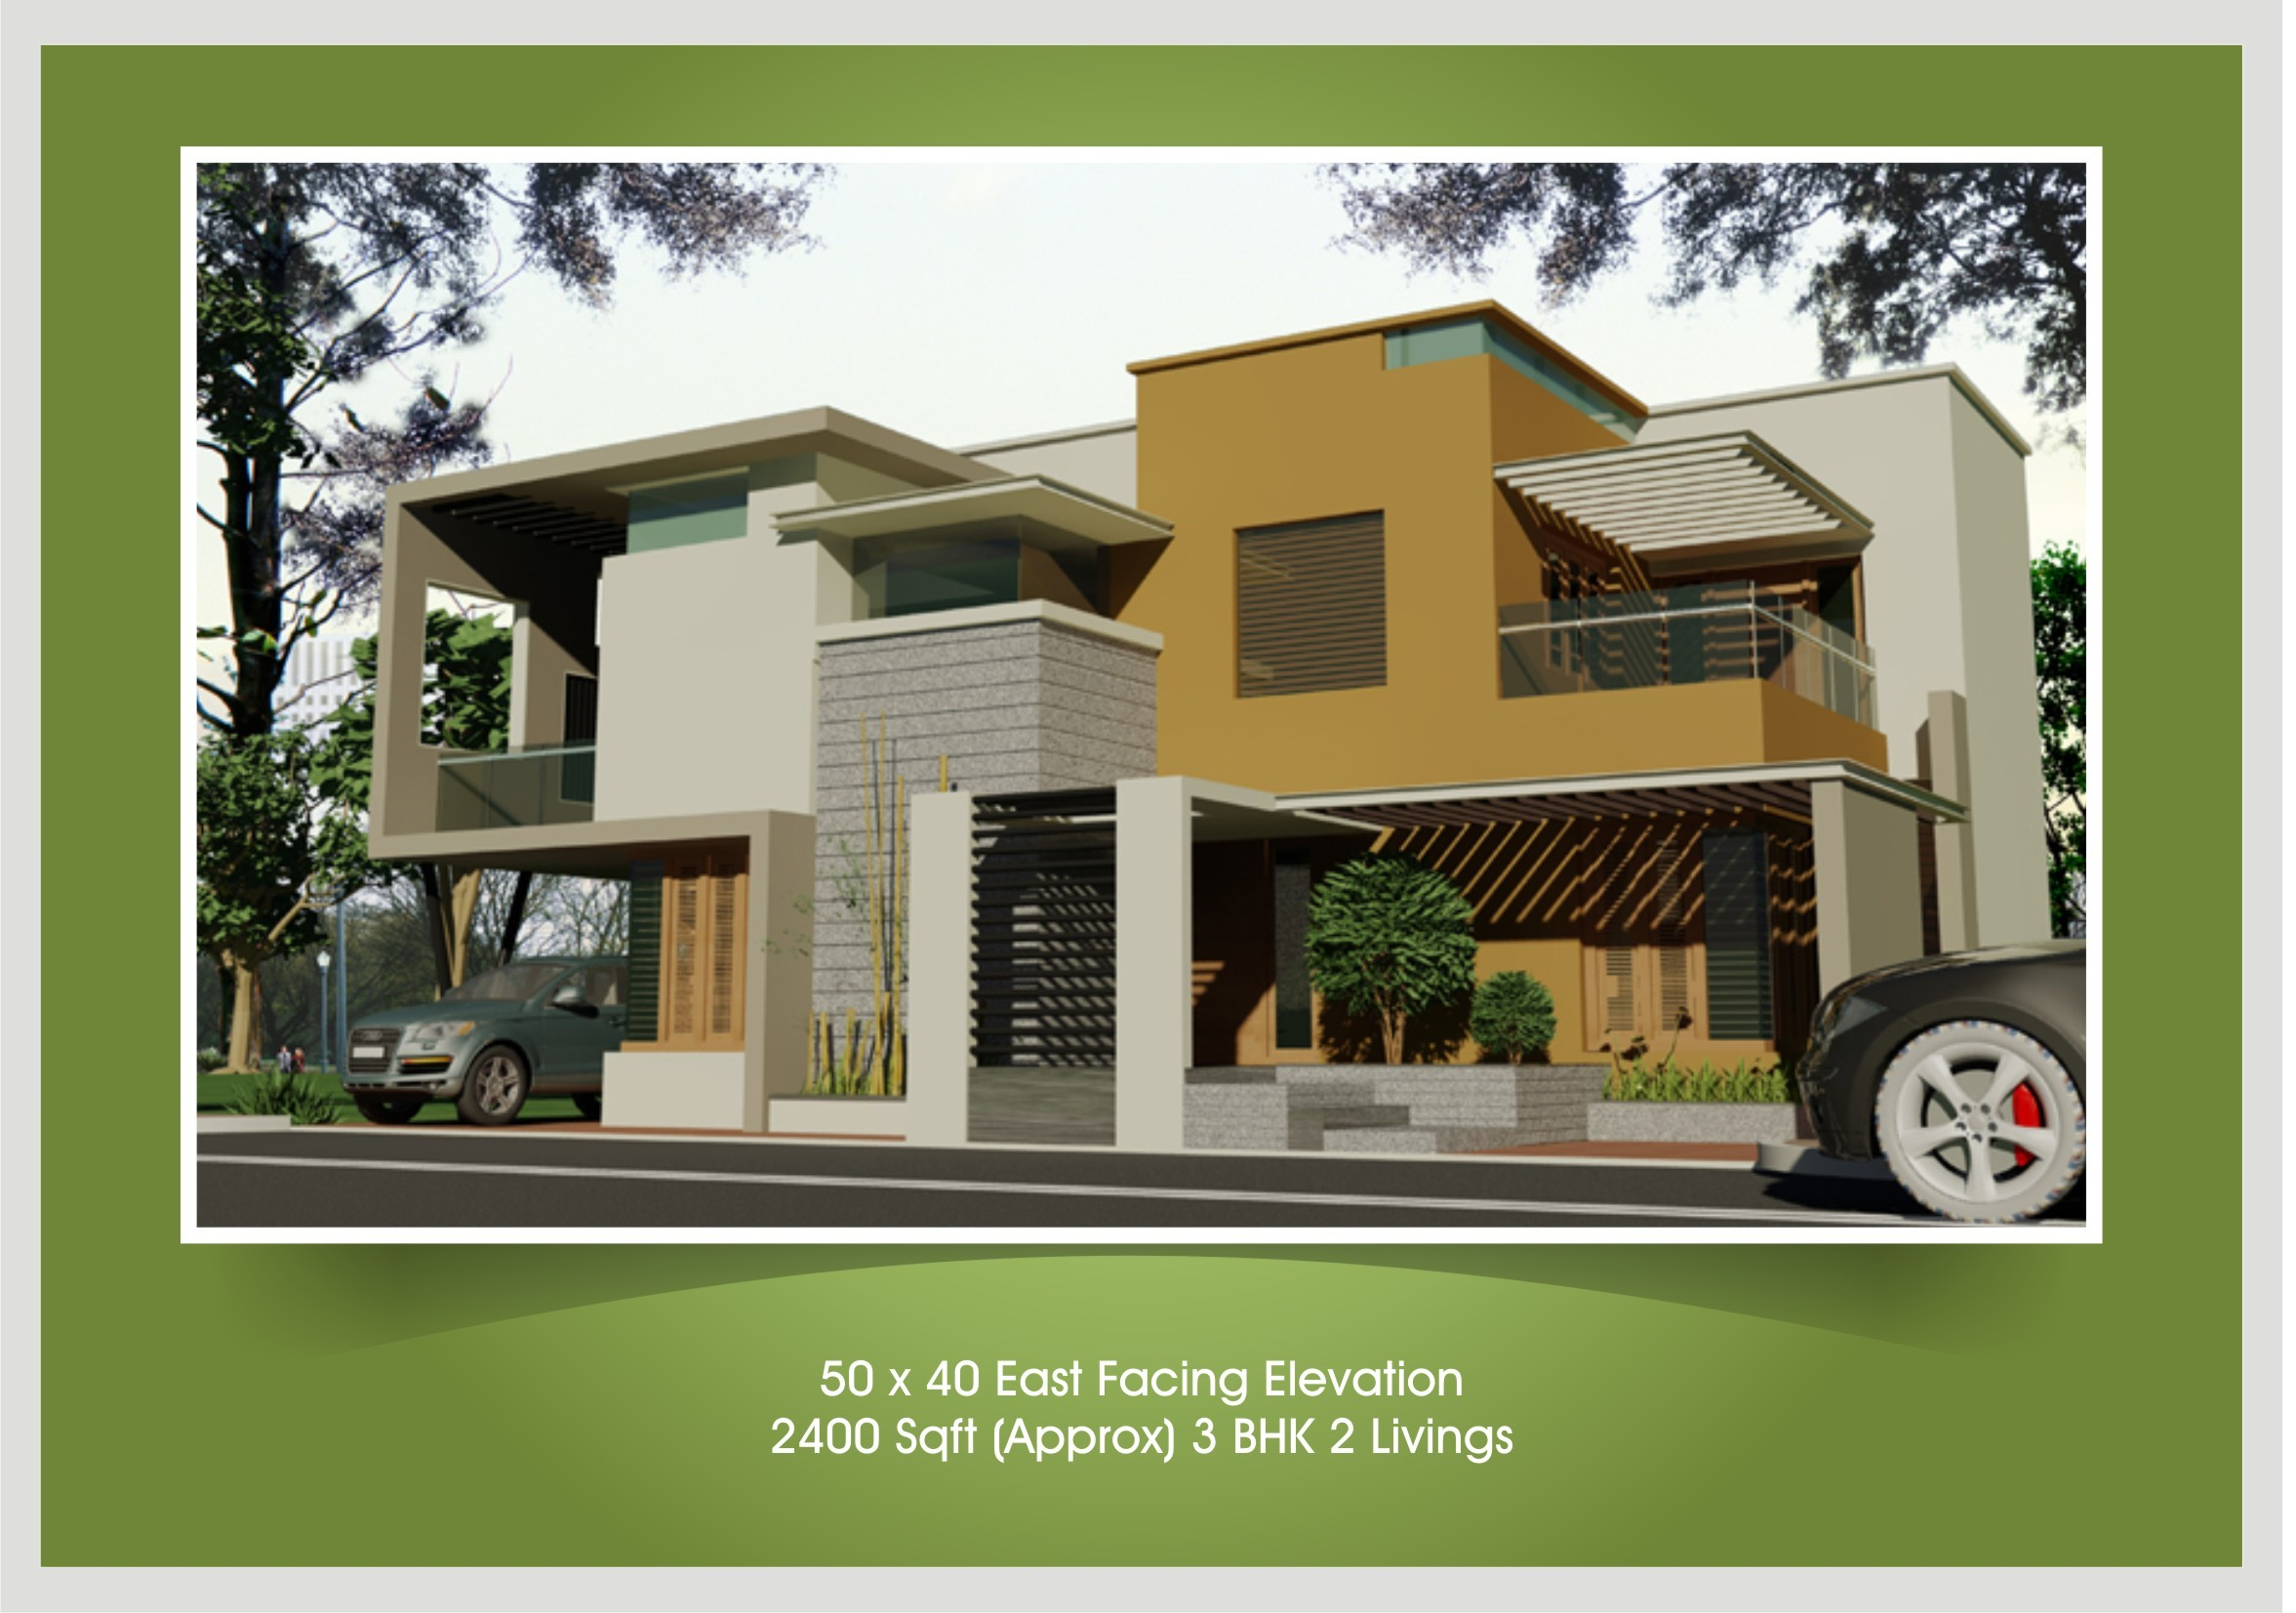 Single Floor East Facing Elevation : Upcoming residential villas beml mysore one